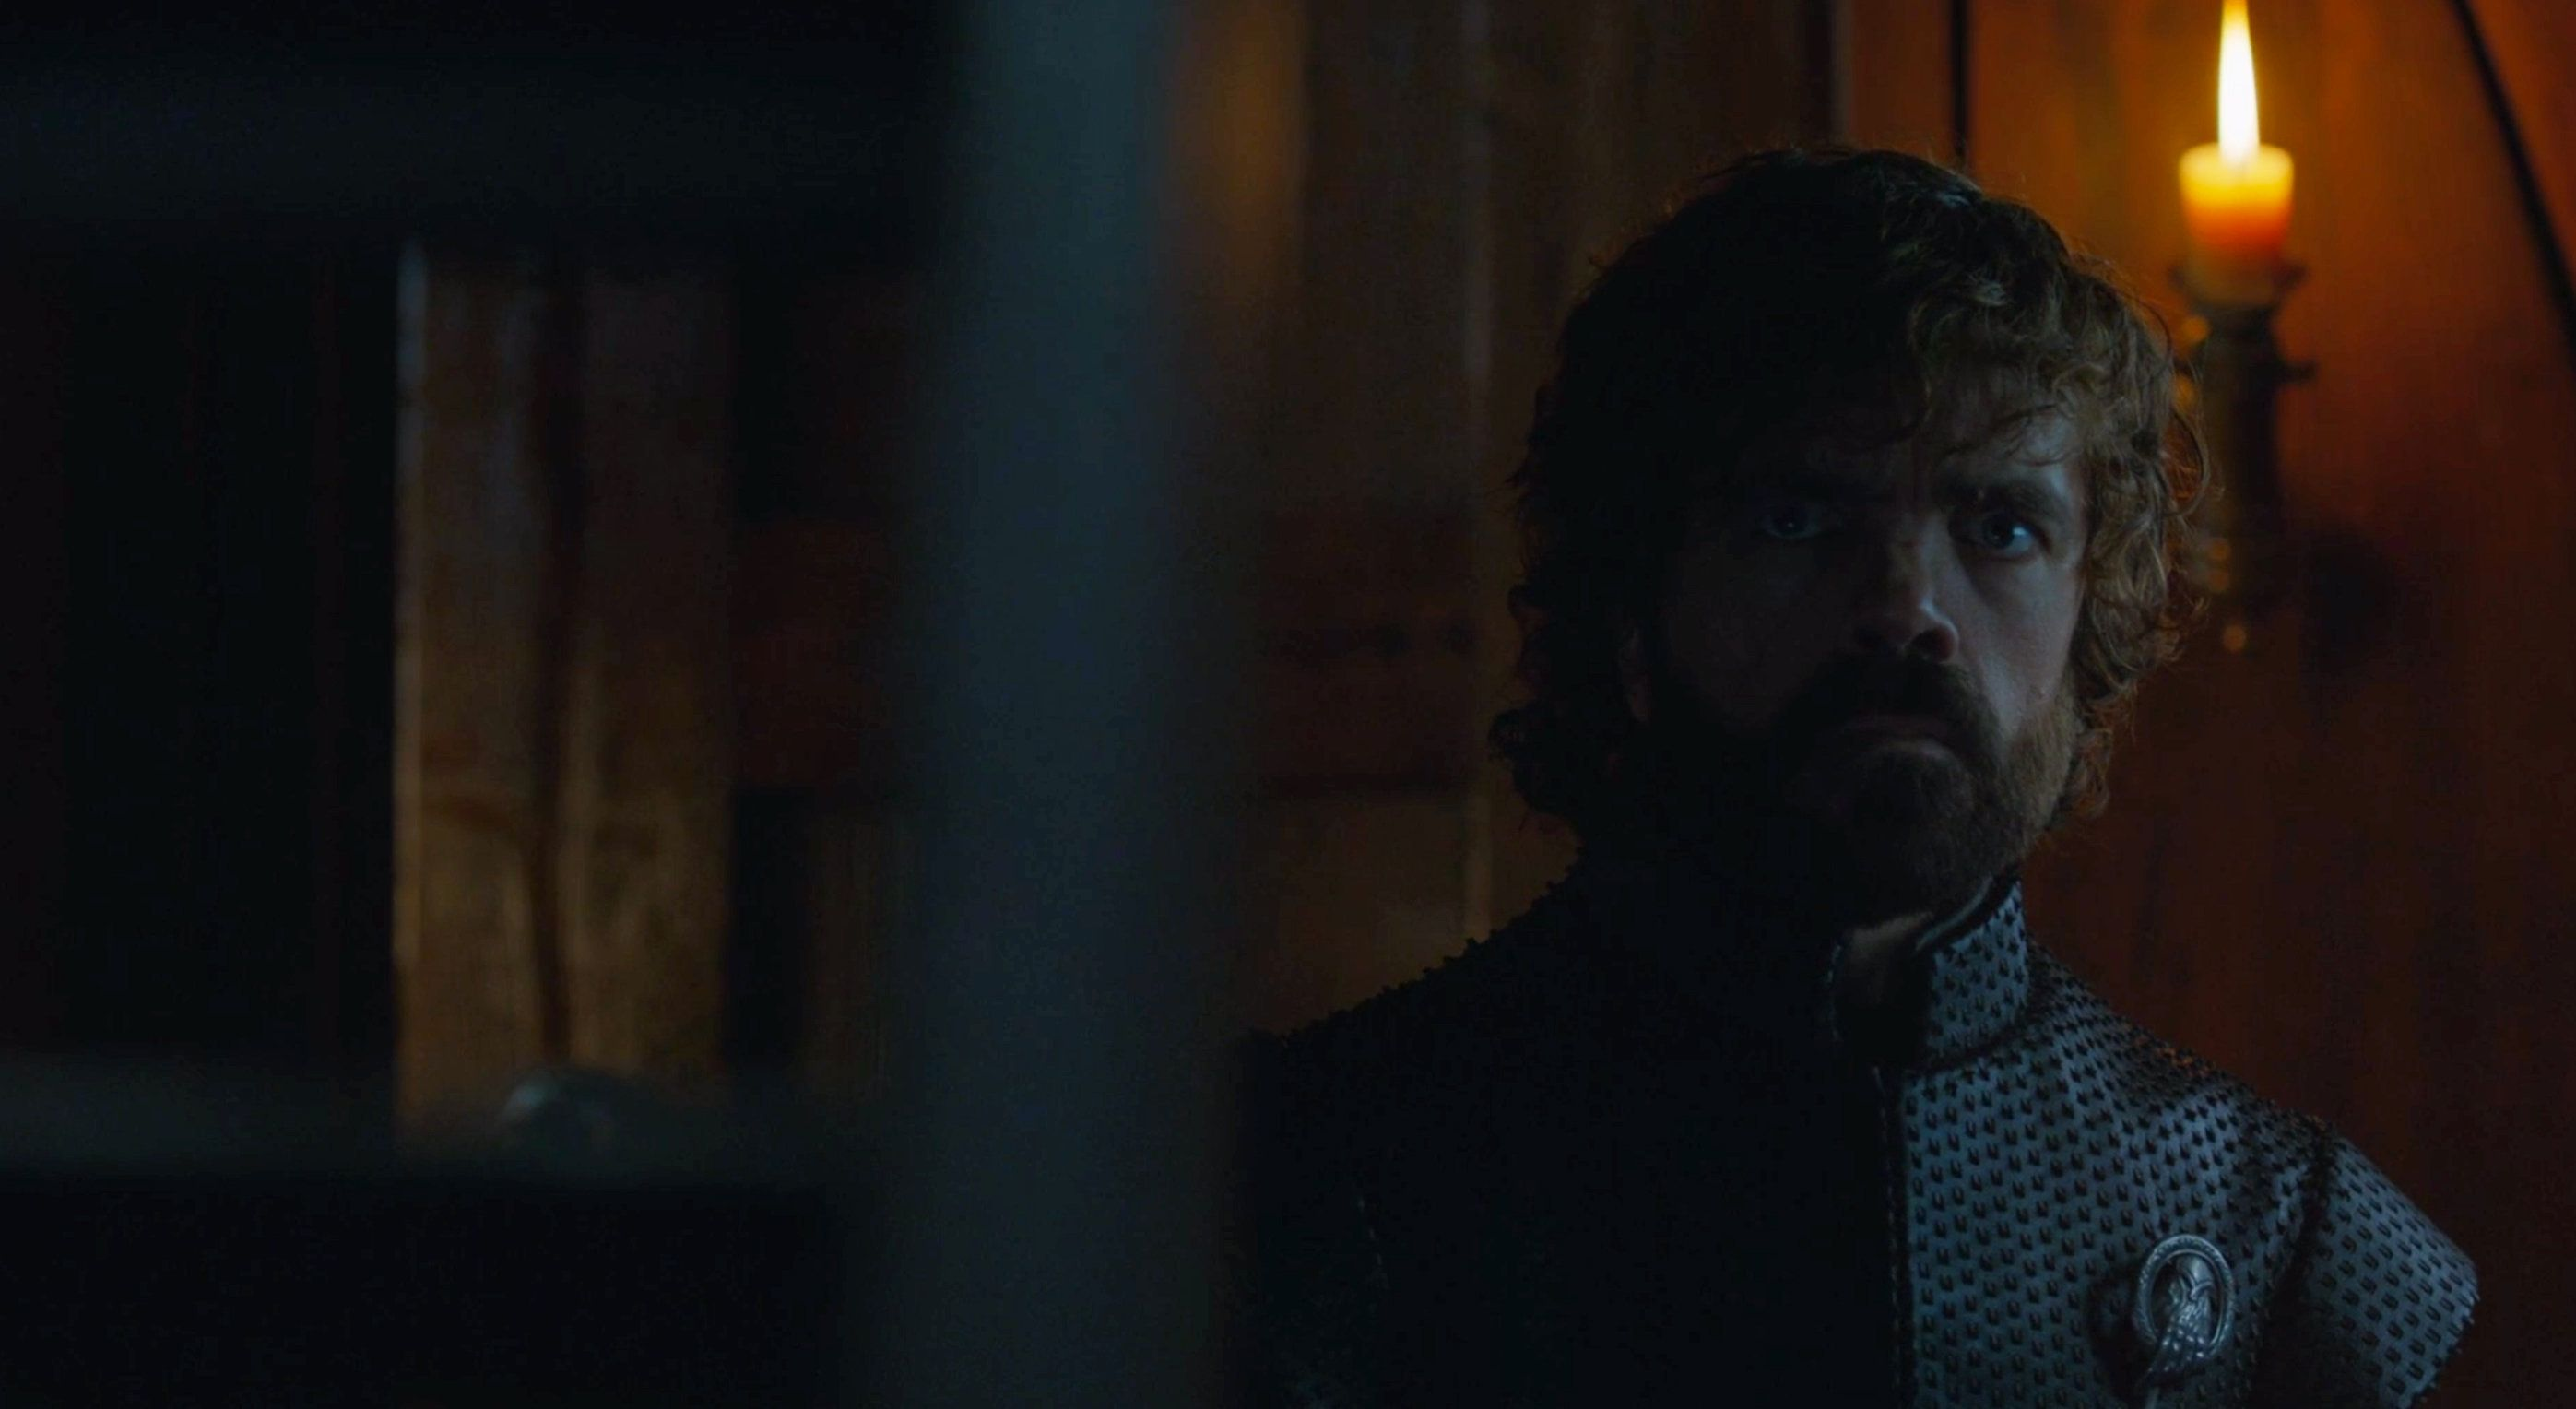 The Possible Reason Tyrion Made That Look In The 'Game Of Thrones'